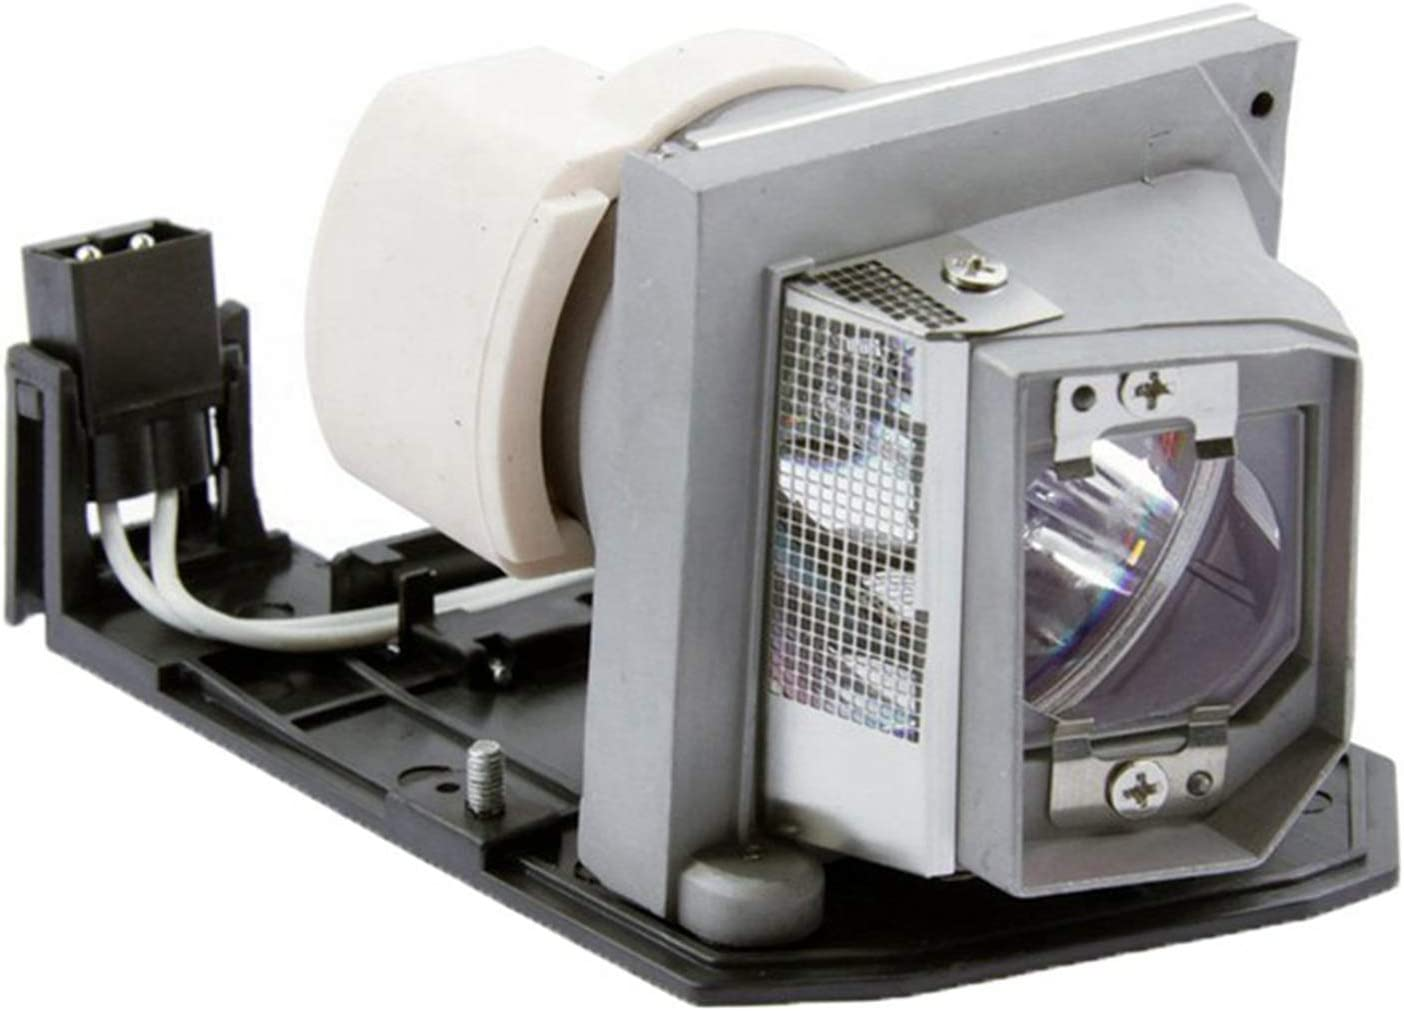 BL-FP230D SP.8EG01GC01 BL-FP230J Replacement Projector Lamp for Optoma HD20 HD200X TX612 TX615 EX612 EX615 HD2200 EH1020 HD180 DH1010, Lamp with Housing by CARSN